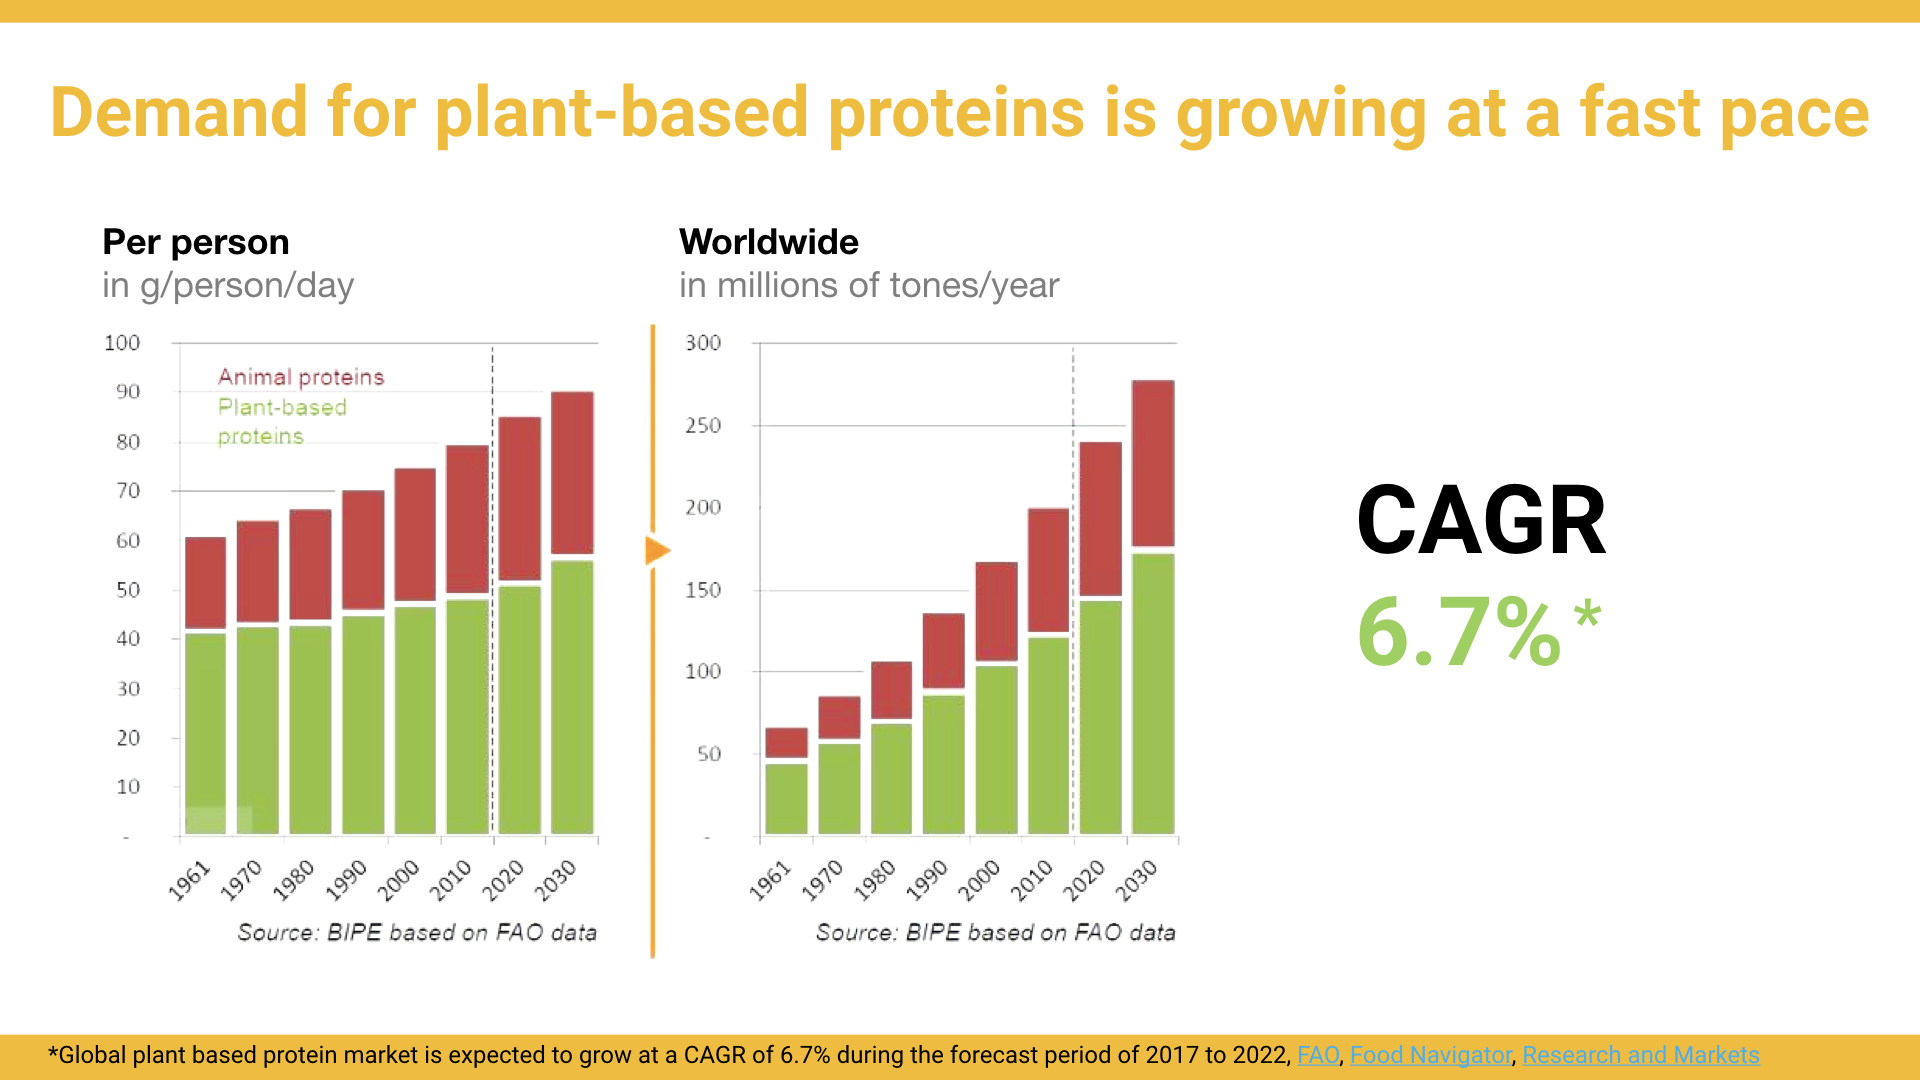 Source: Global plant based protein market is expected to grow at a CAGR of 6.7% during the forecast period of 2017 to 2022,  FAO ,  Food Navigator ,  Research and Markets